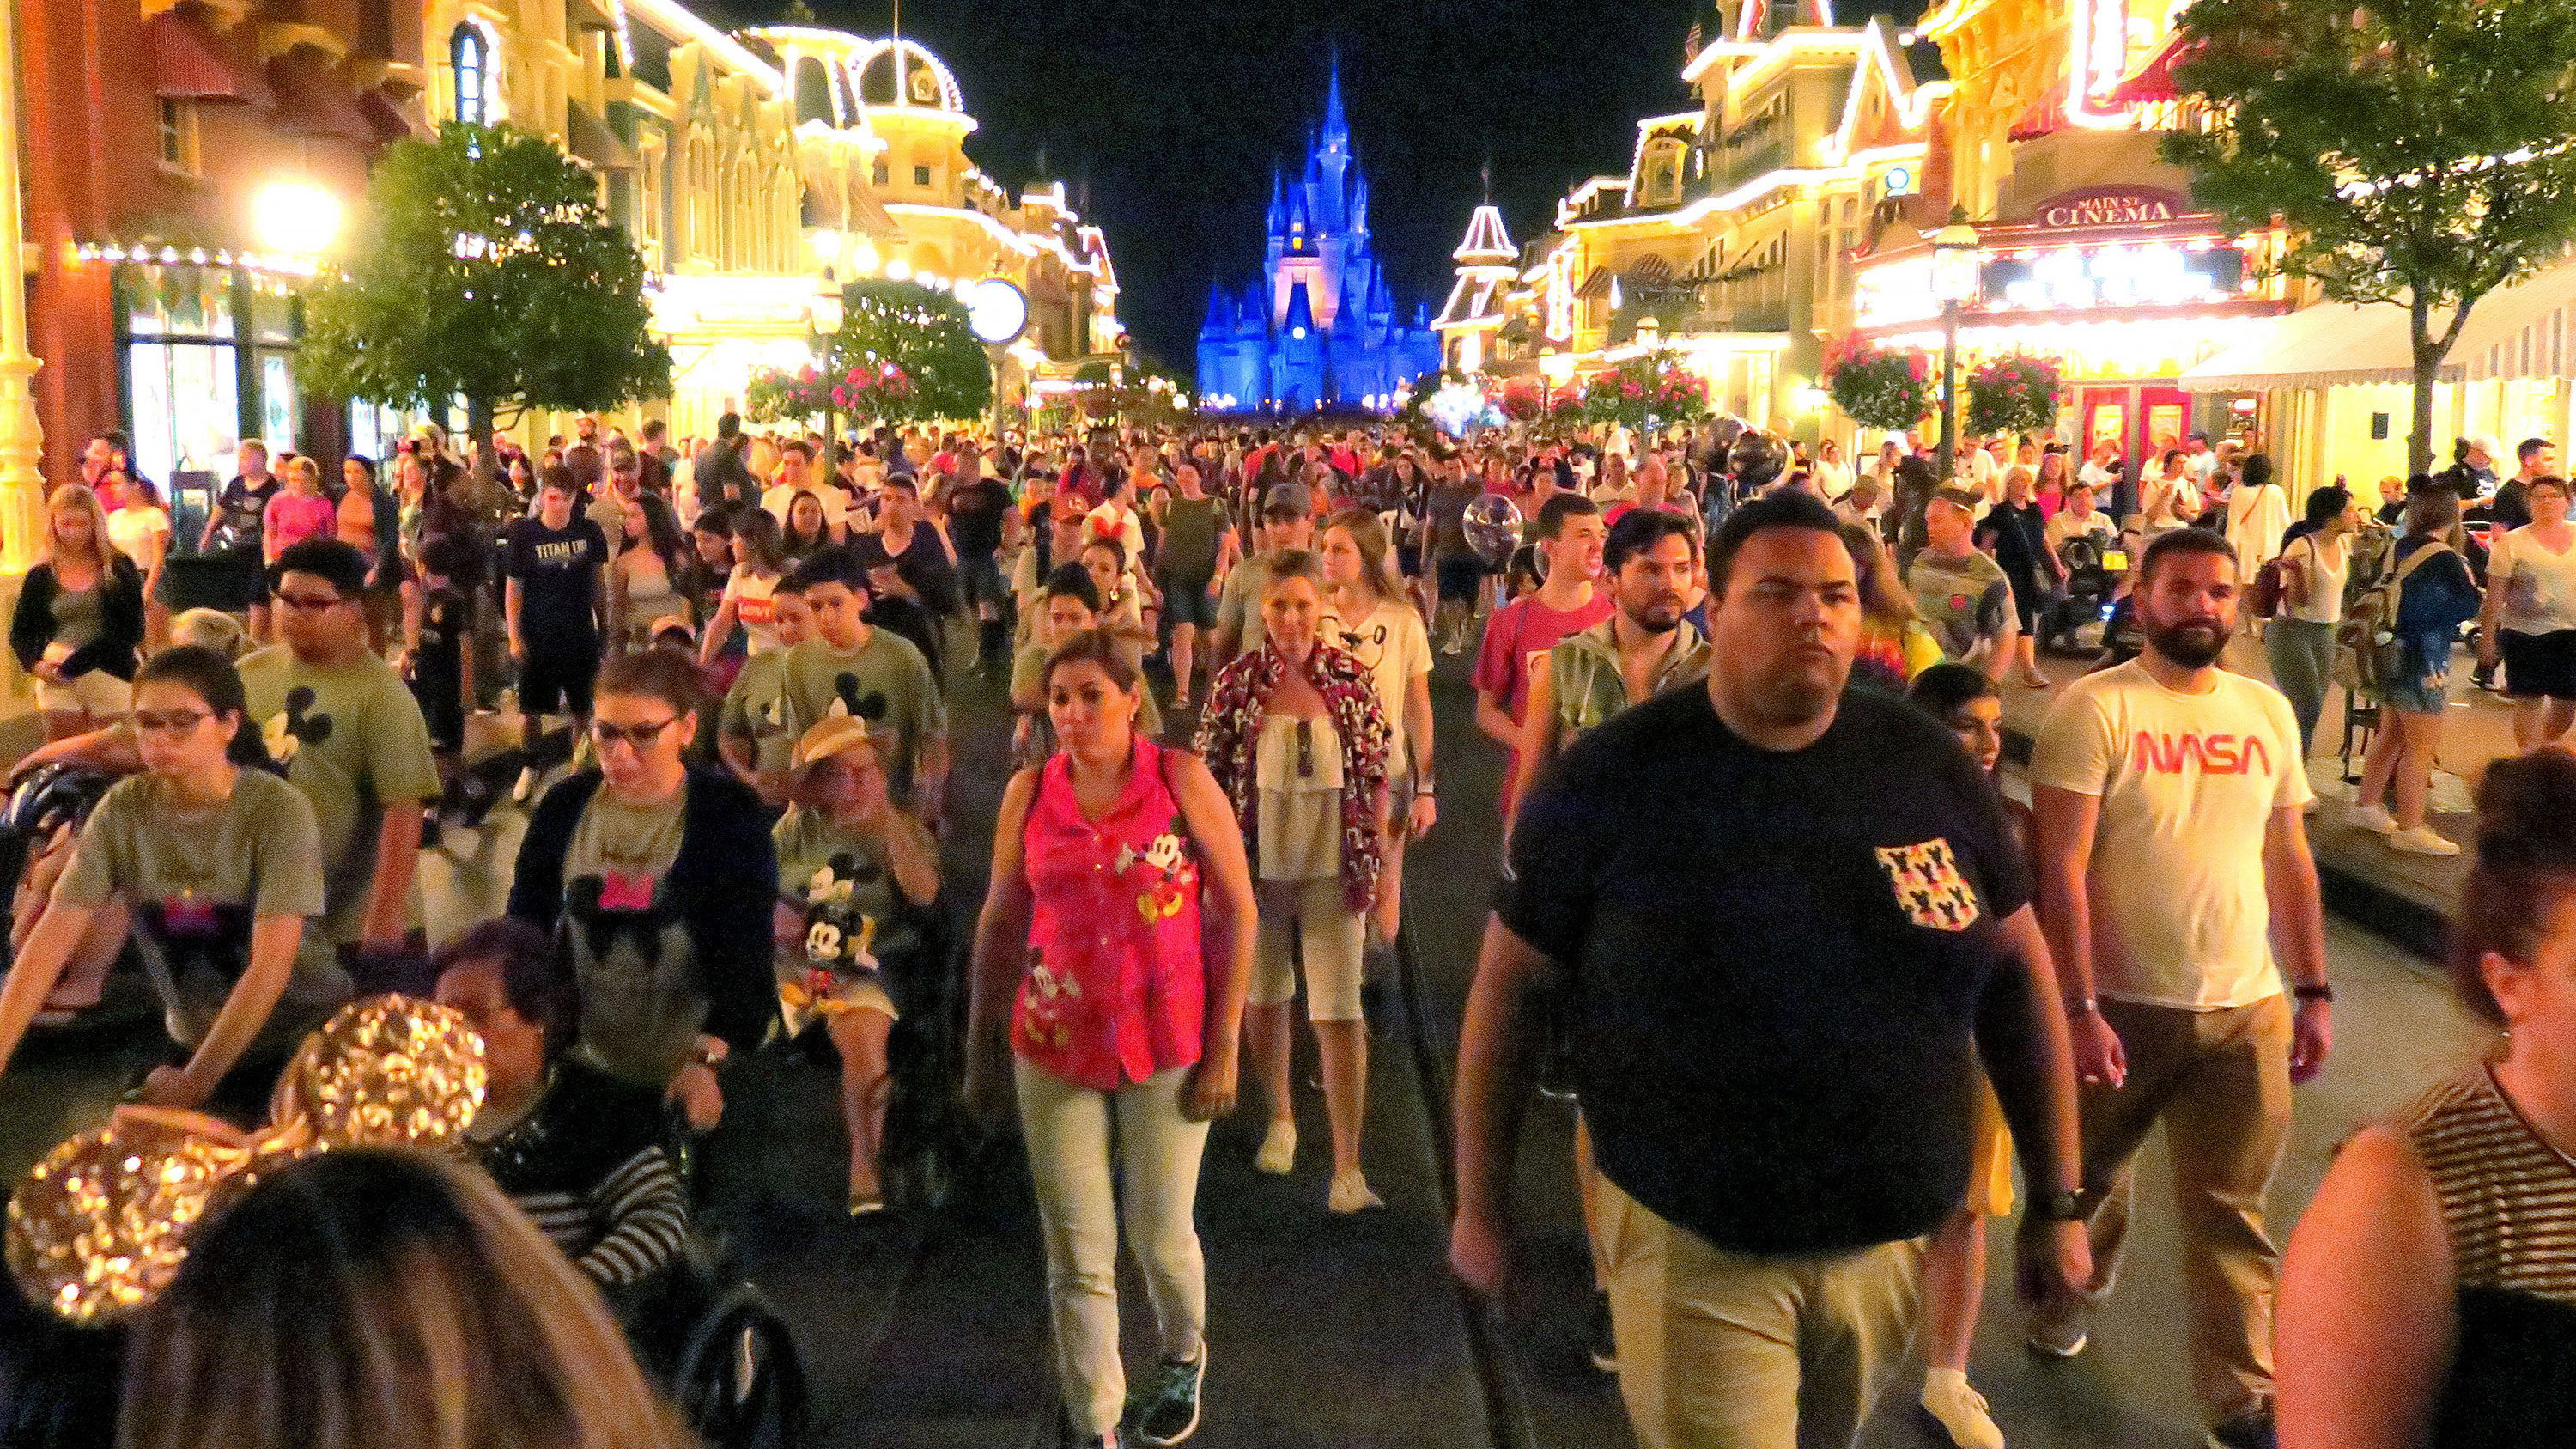 When Will Disneyland Reopen? It Could Be Sooner Than Expected